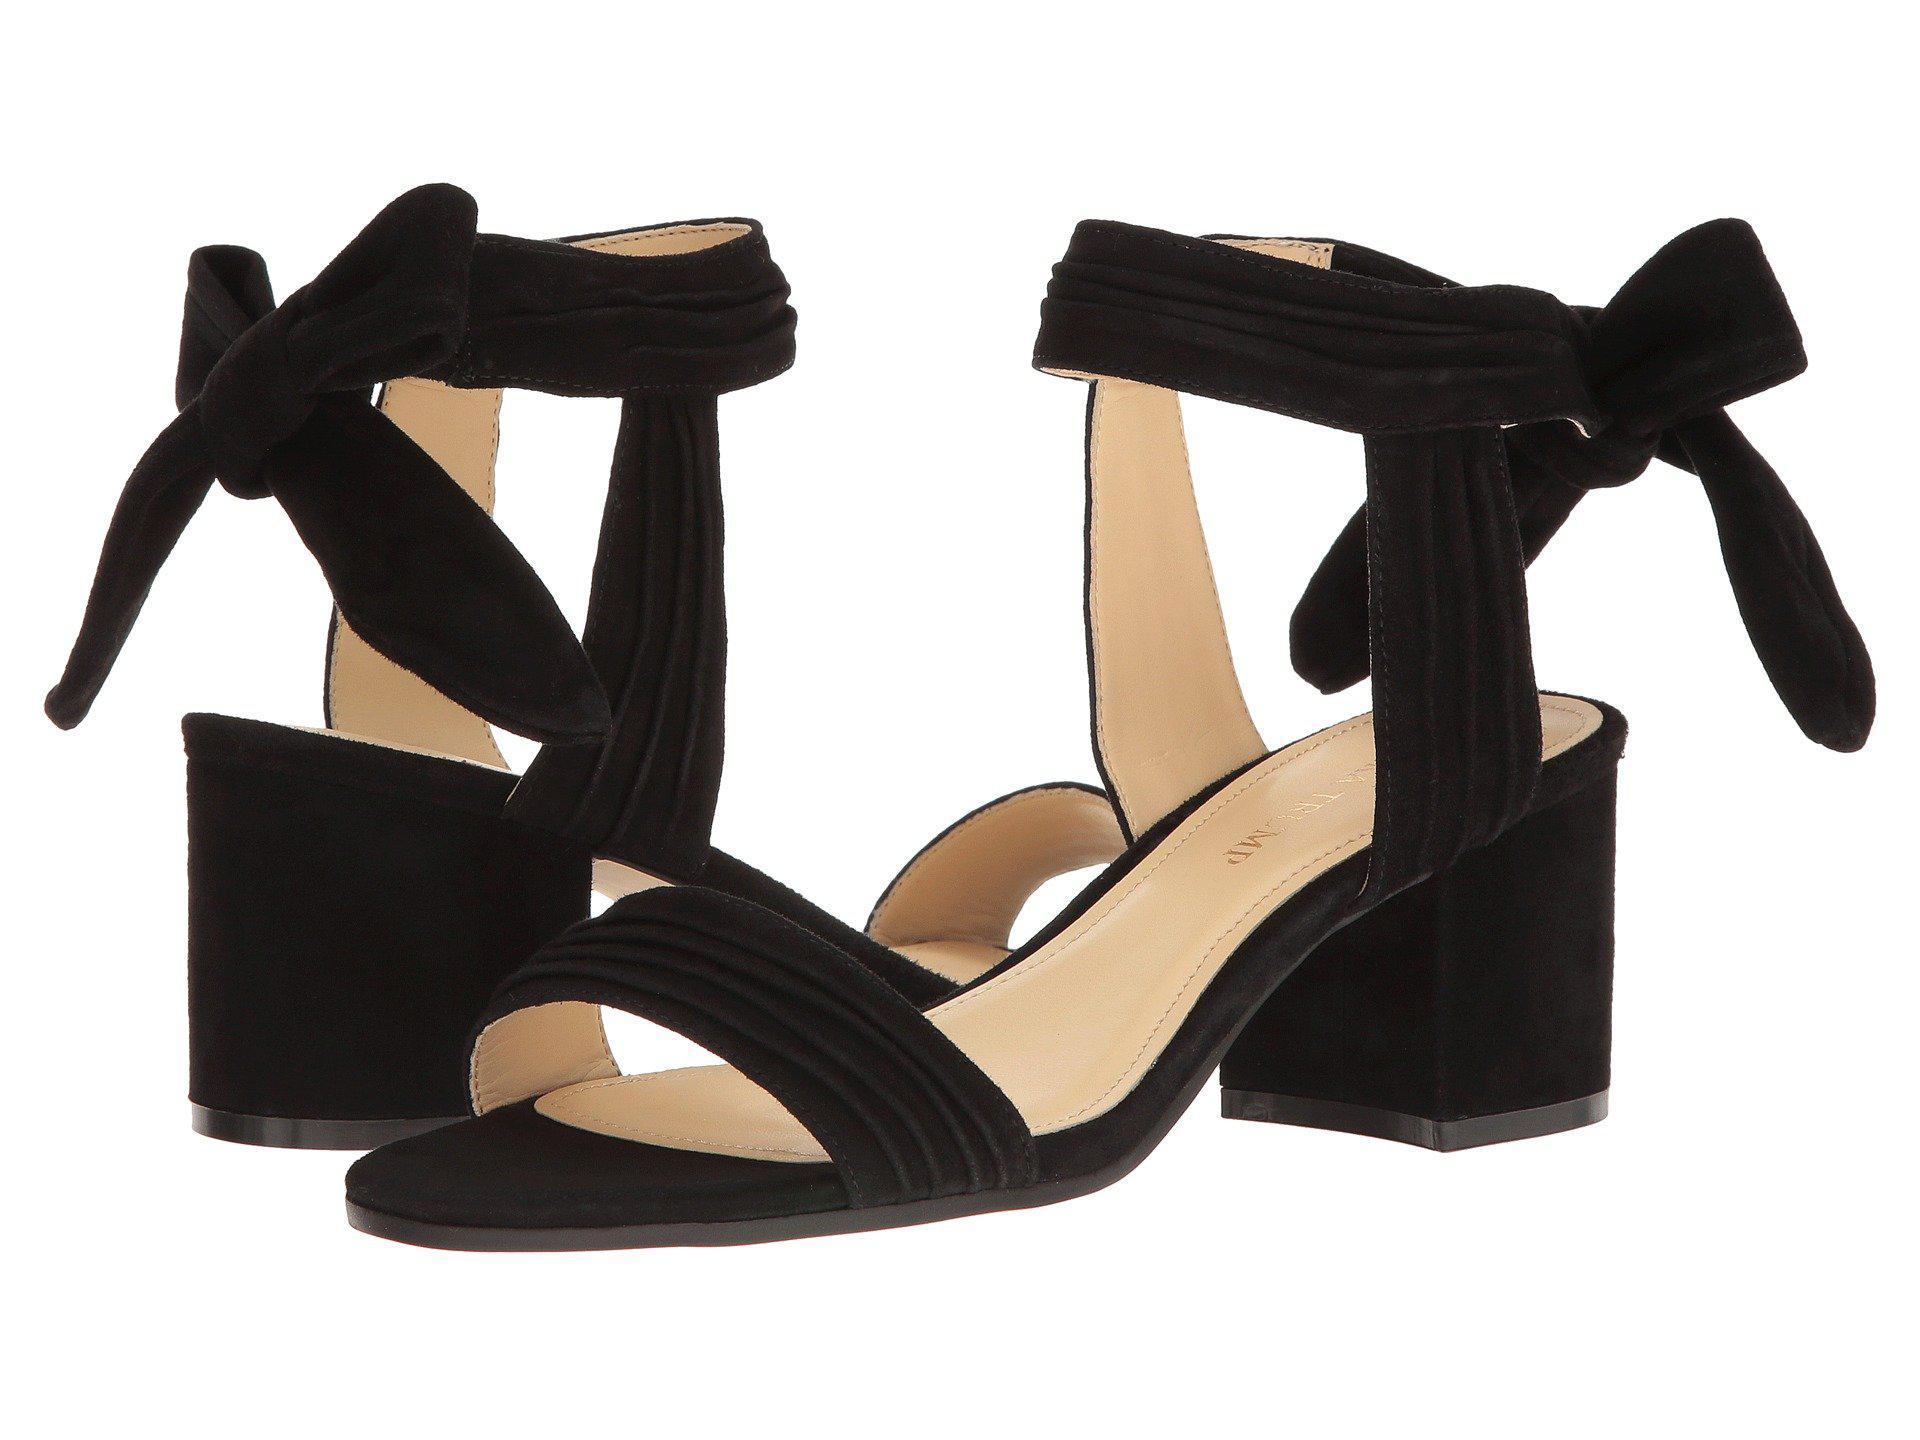 Ivanka Trump. Women's Black Edline